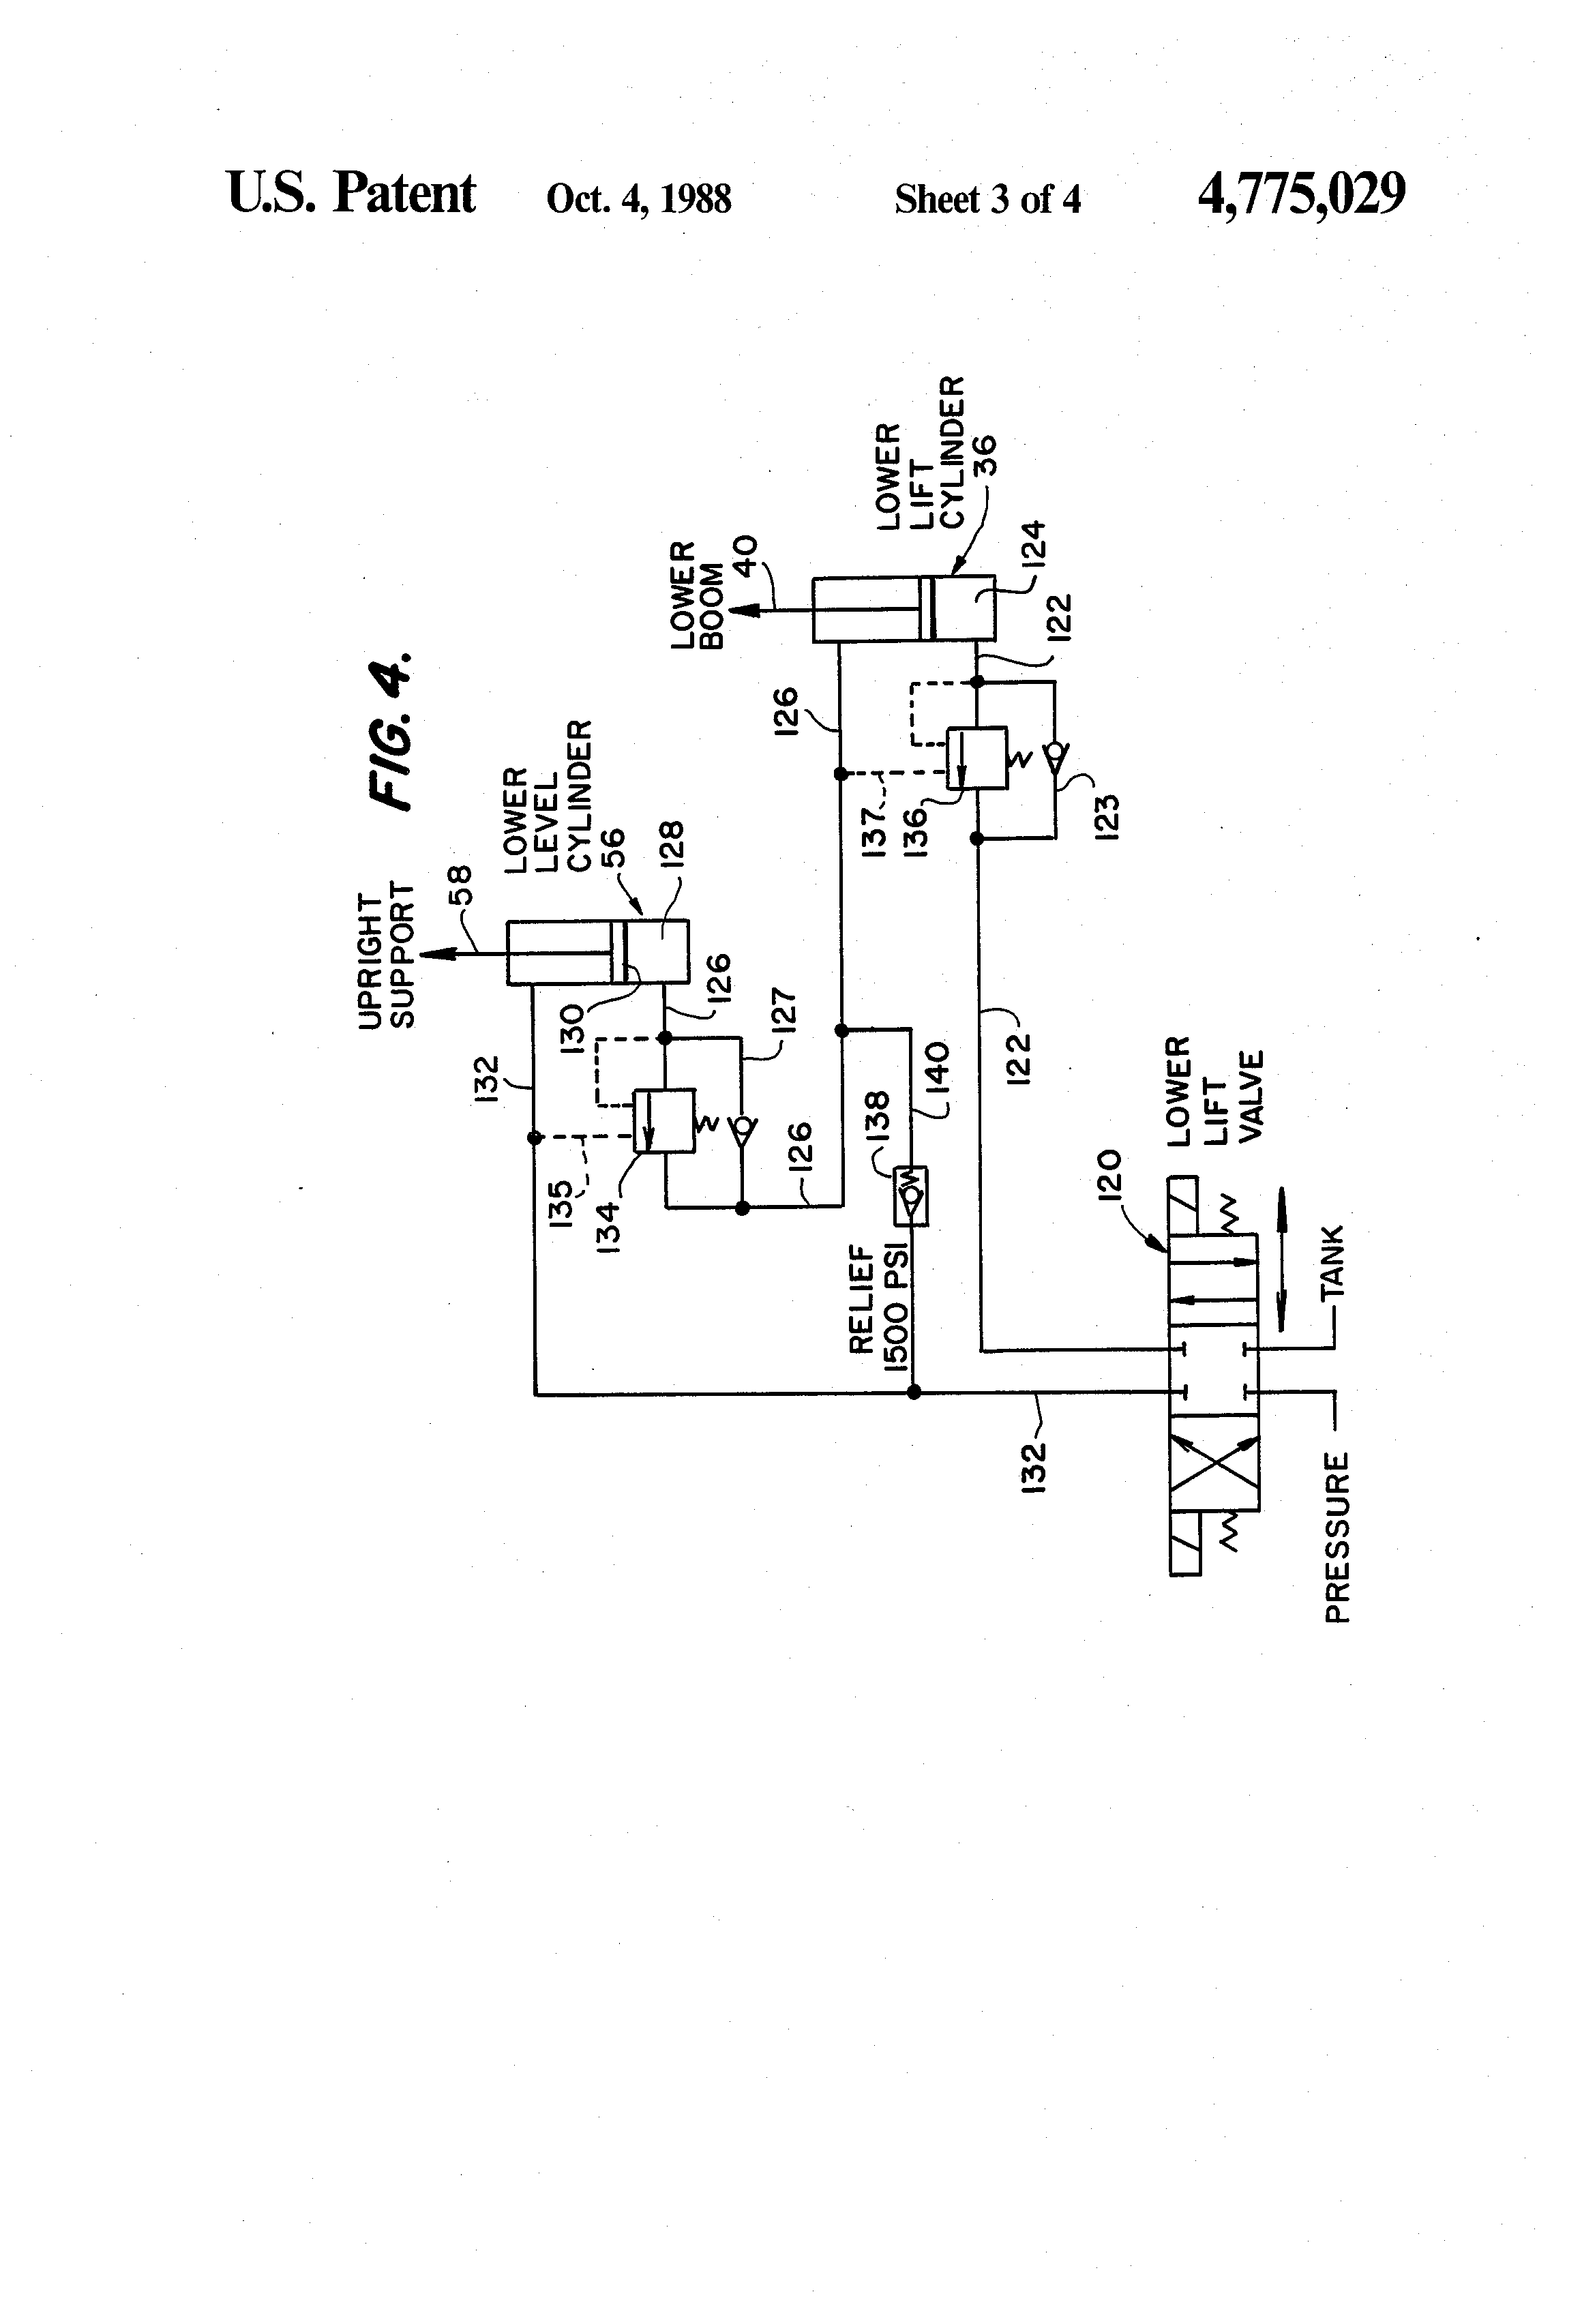 Lx665 Wiring Diagram - Wiring Diagram Used on